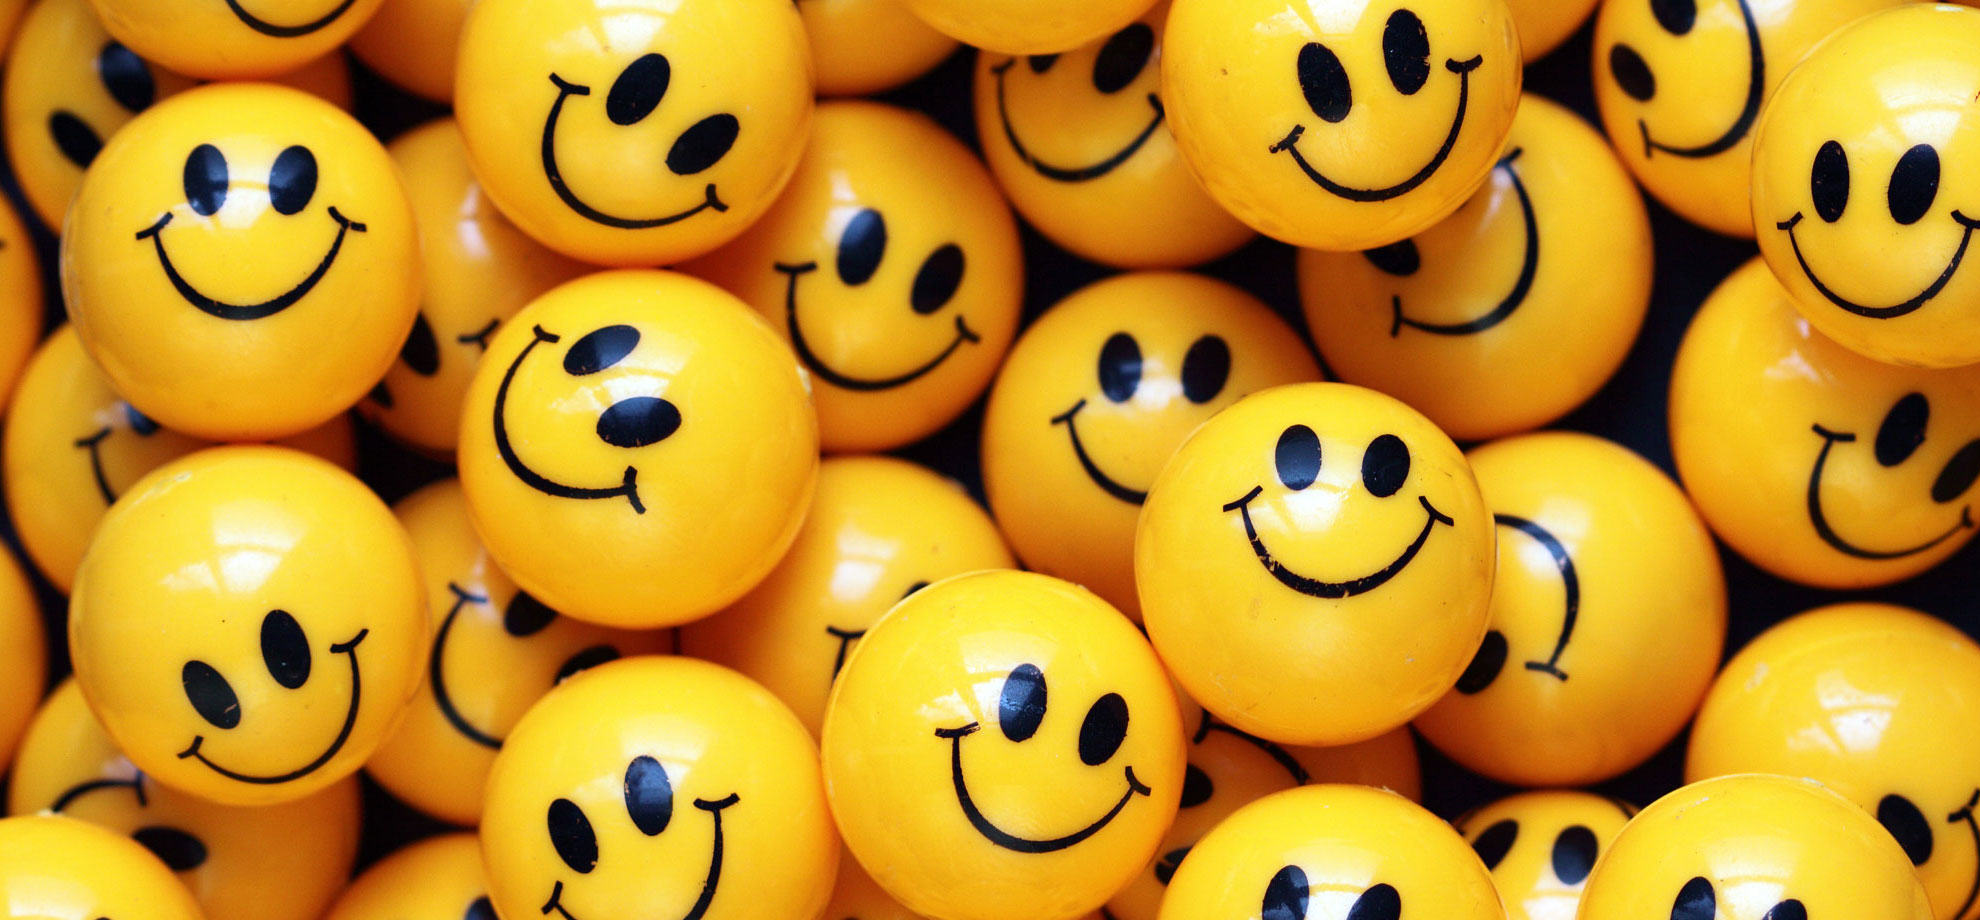 Brits Are Actually Much Happier Than They Think They Are happy